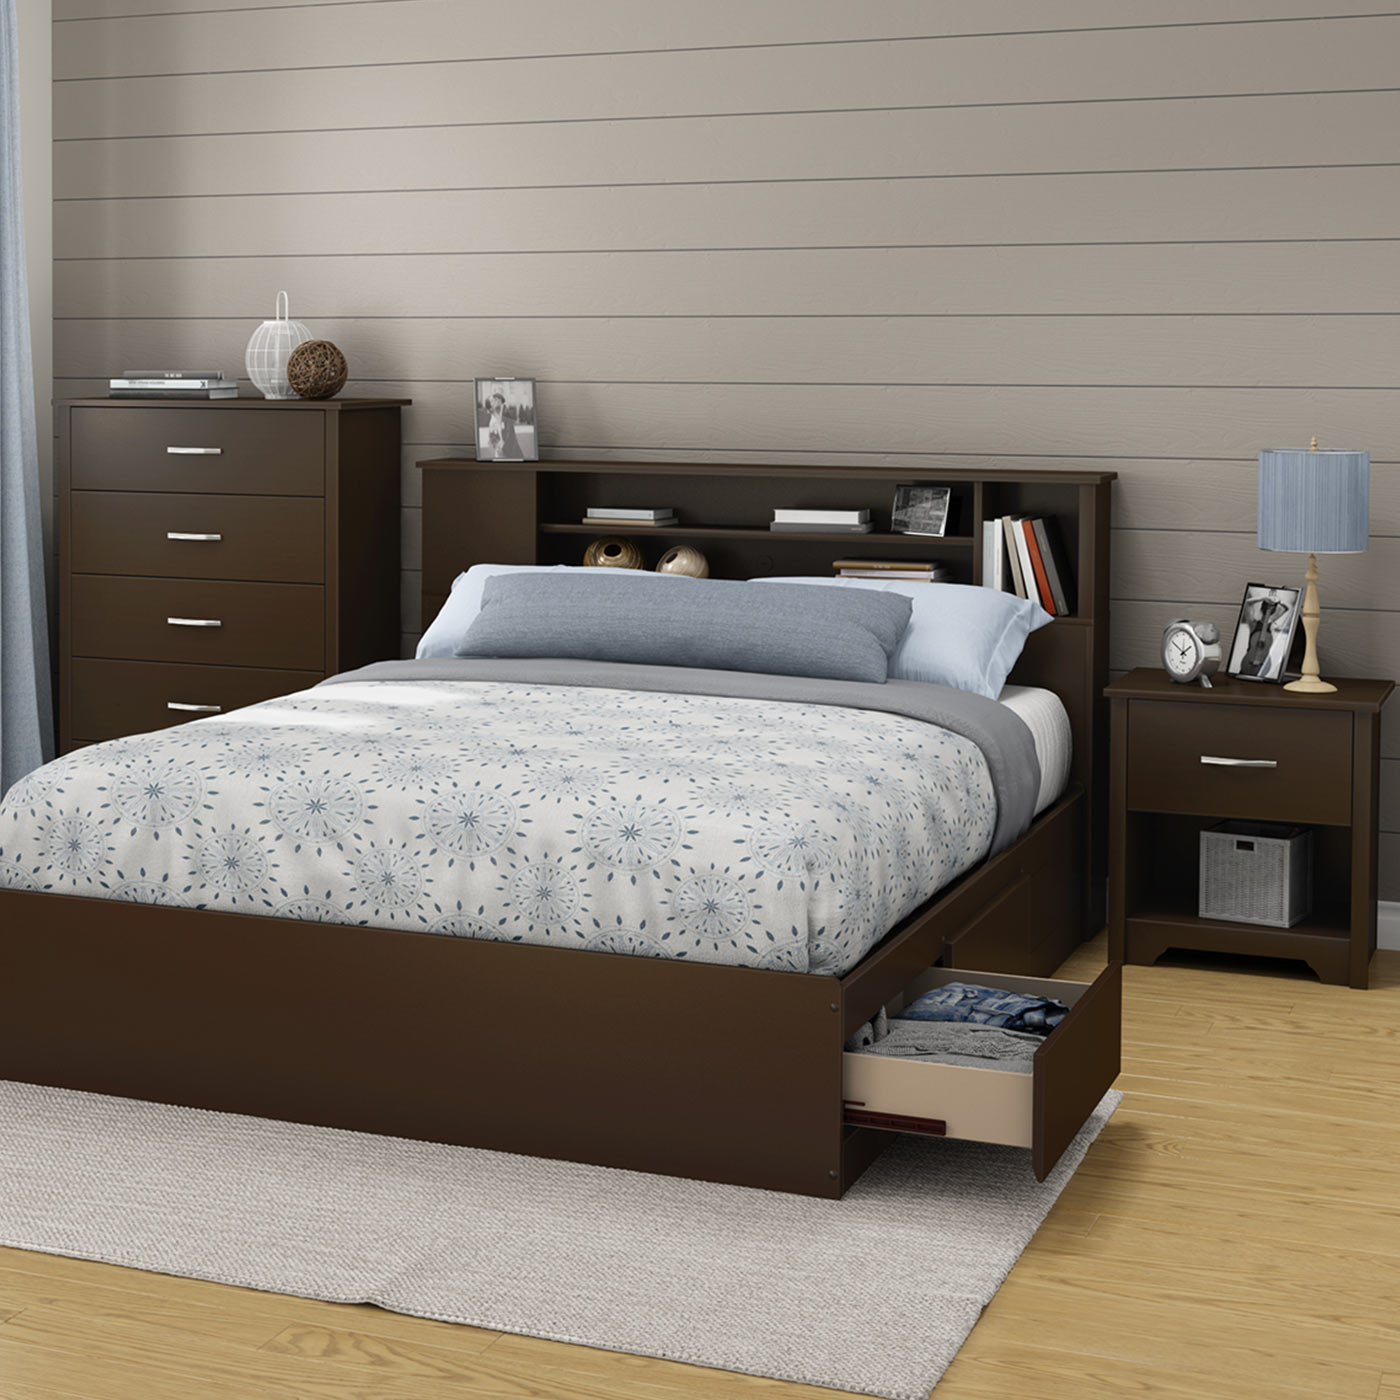 Southshore Fusion 4 Piece Bedroom Set Fusion Queen Mates Bed Bookcase Headboard 5 Drawer Chest And Nightstand In Chocolate